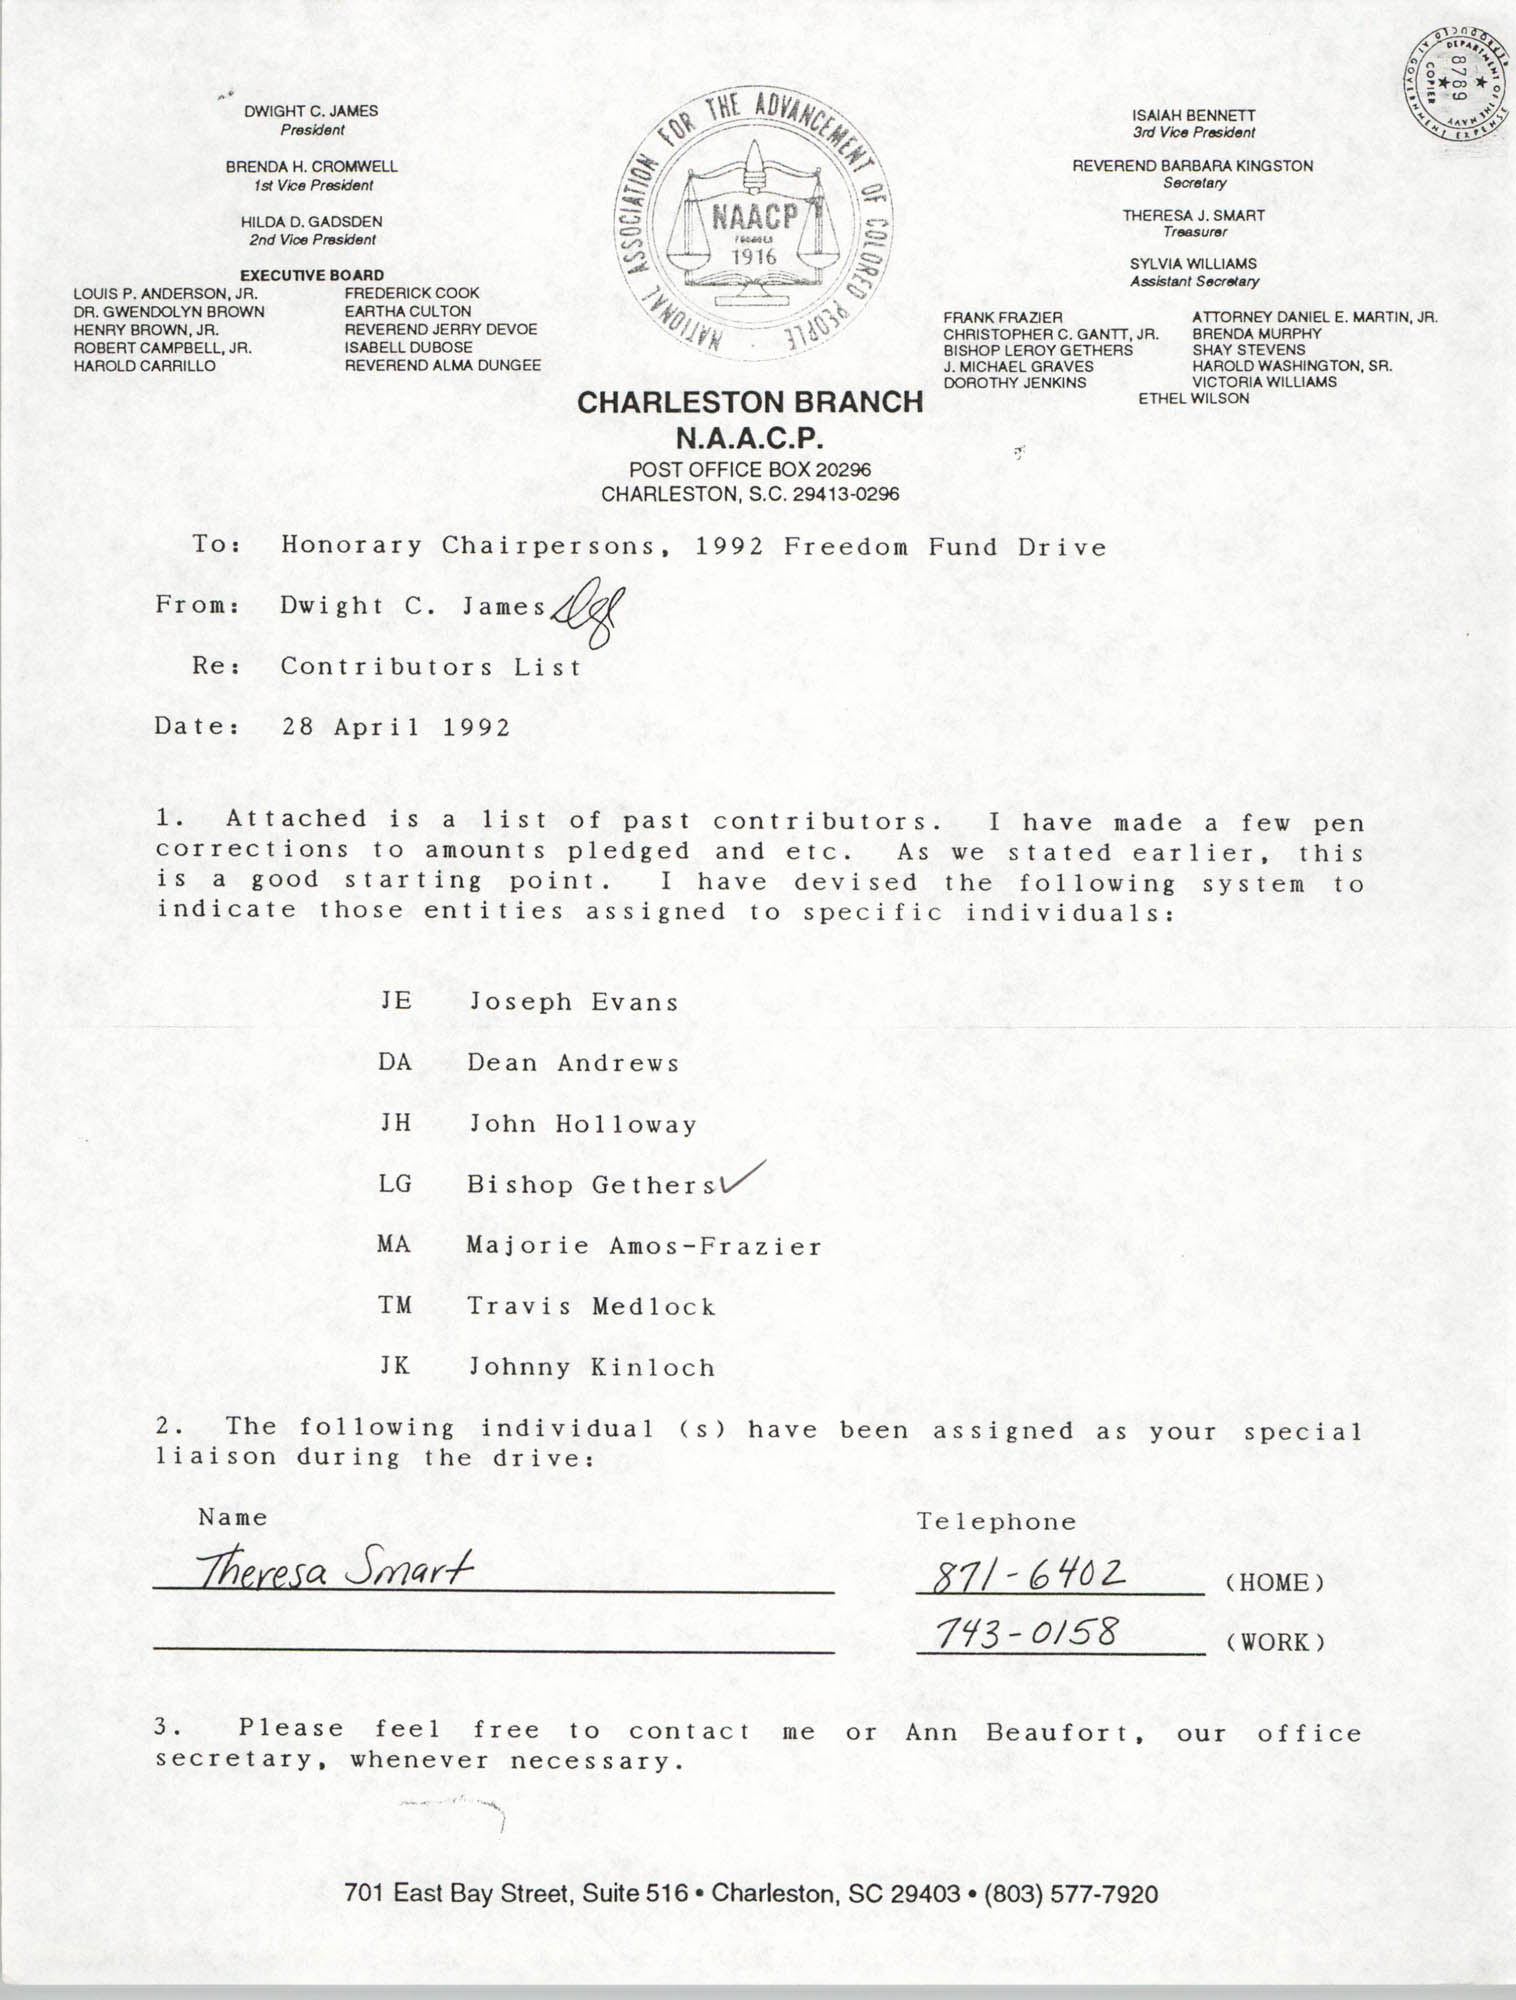 Memorandum, Dwight C. James, April 28, 1992